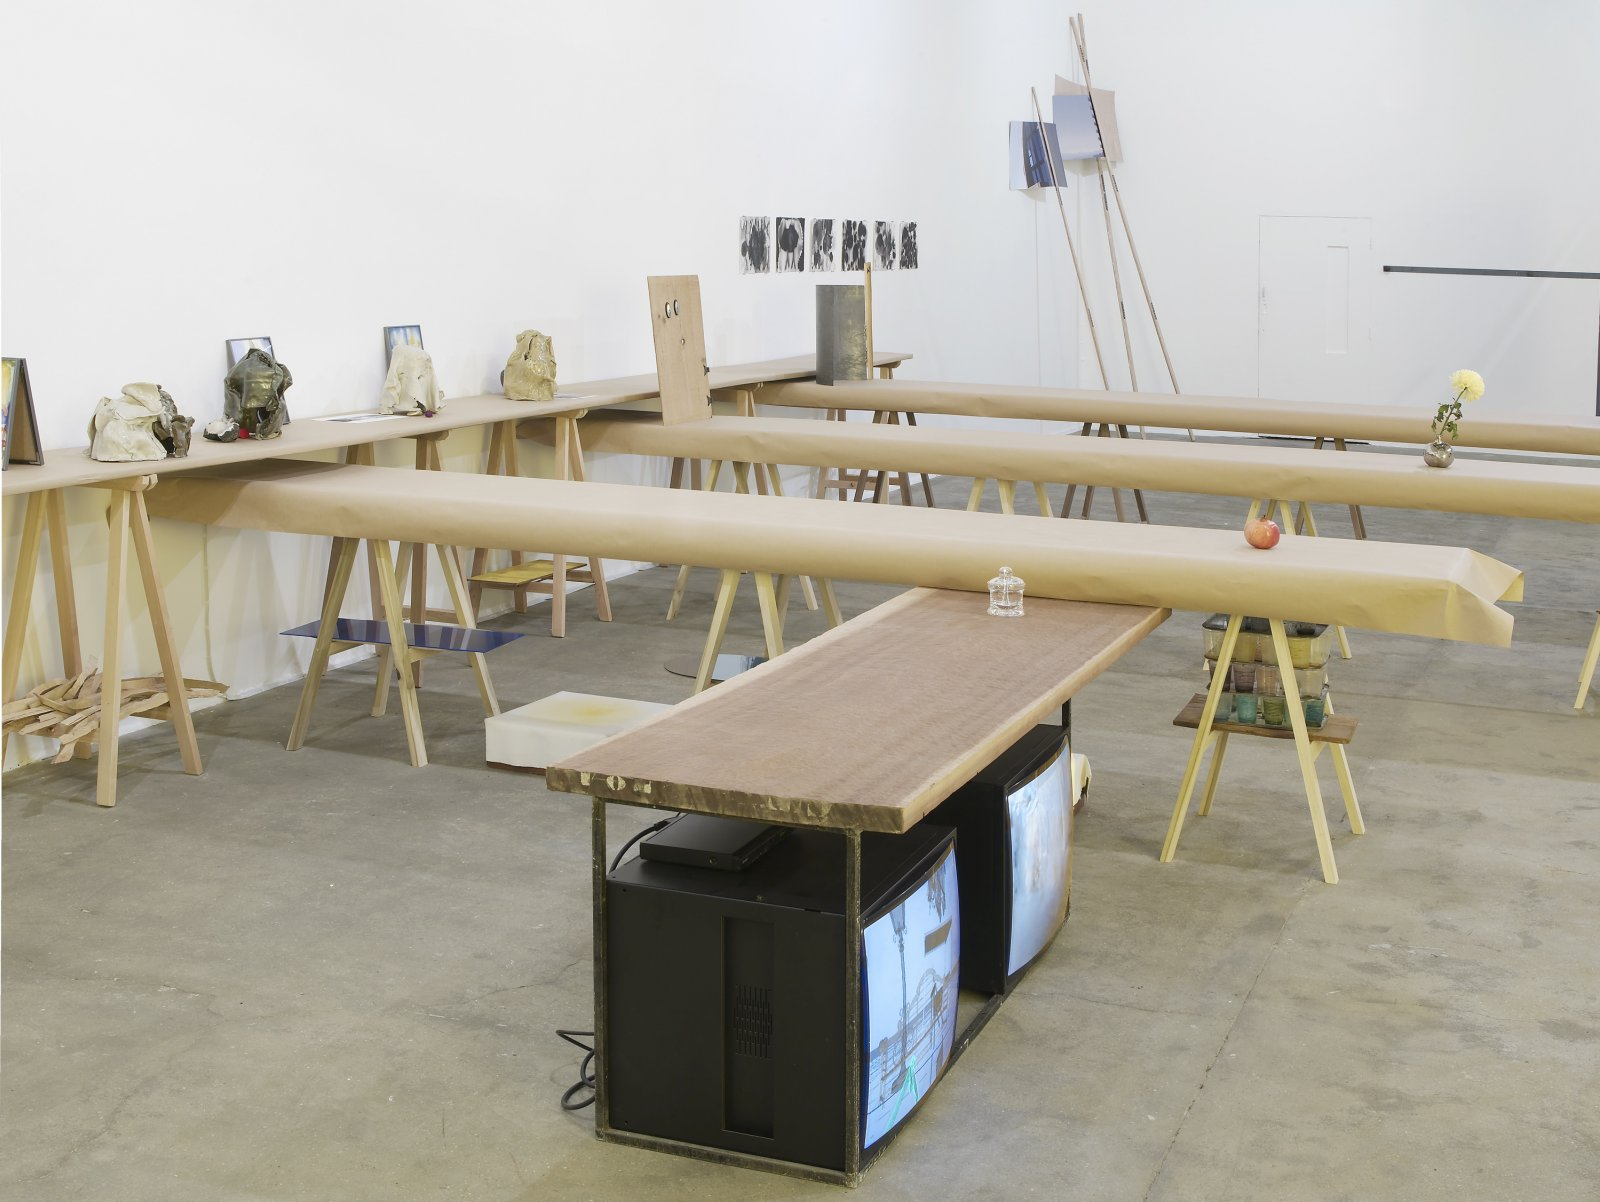 Christina Mackie, The Judges II, 2011–2012, mixed media, dimensions variable. Installation view, Painting the Weights, Chisenhale Gallery, London, UK, 2012 by Christina Mackie